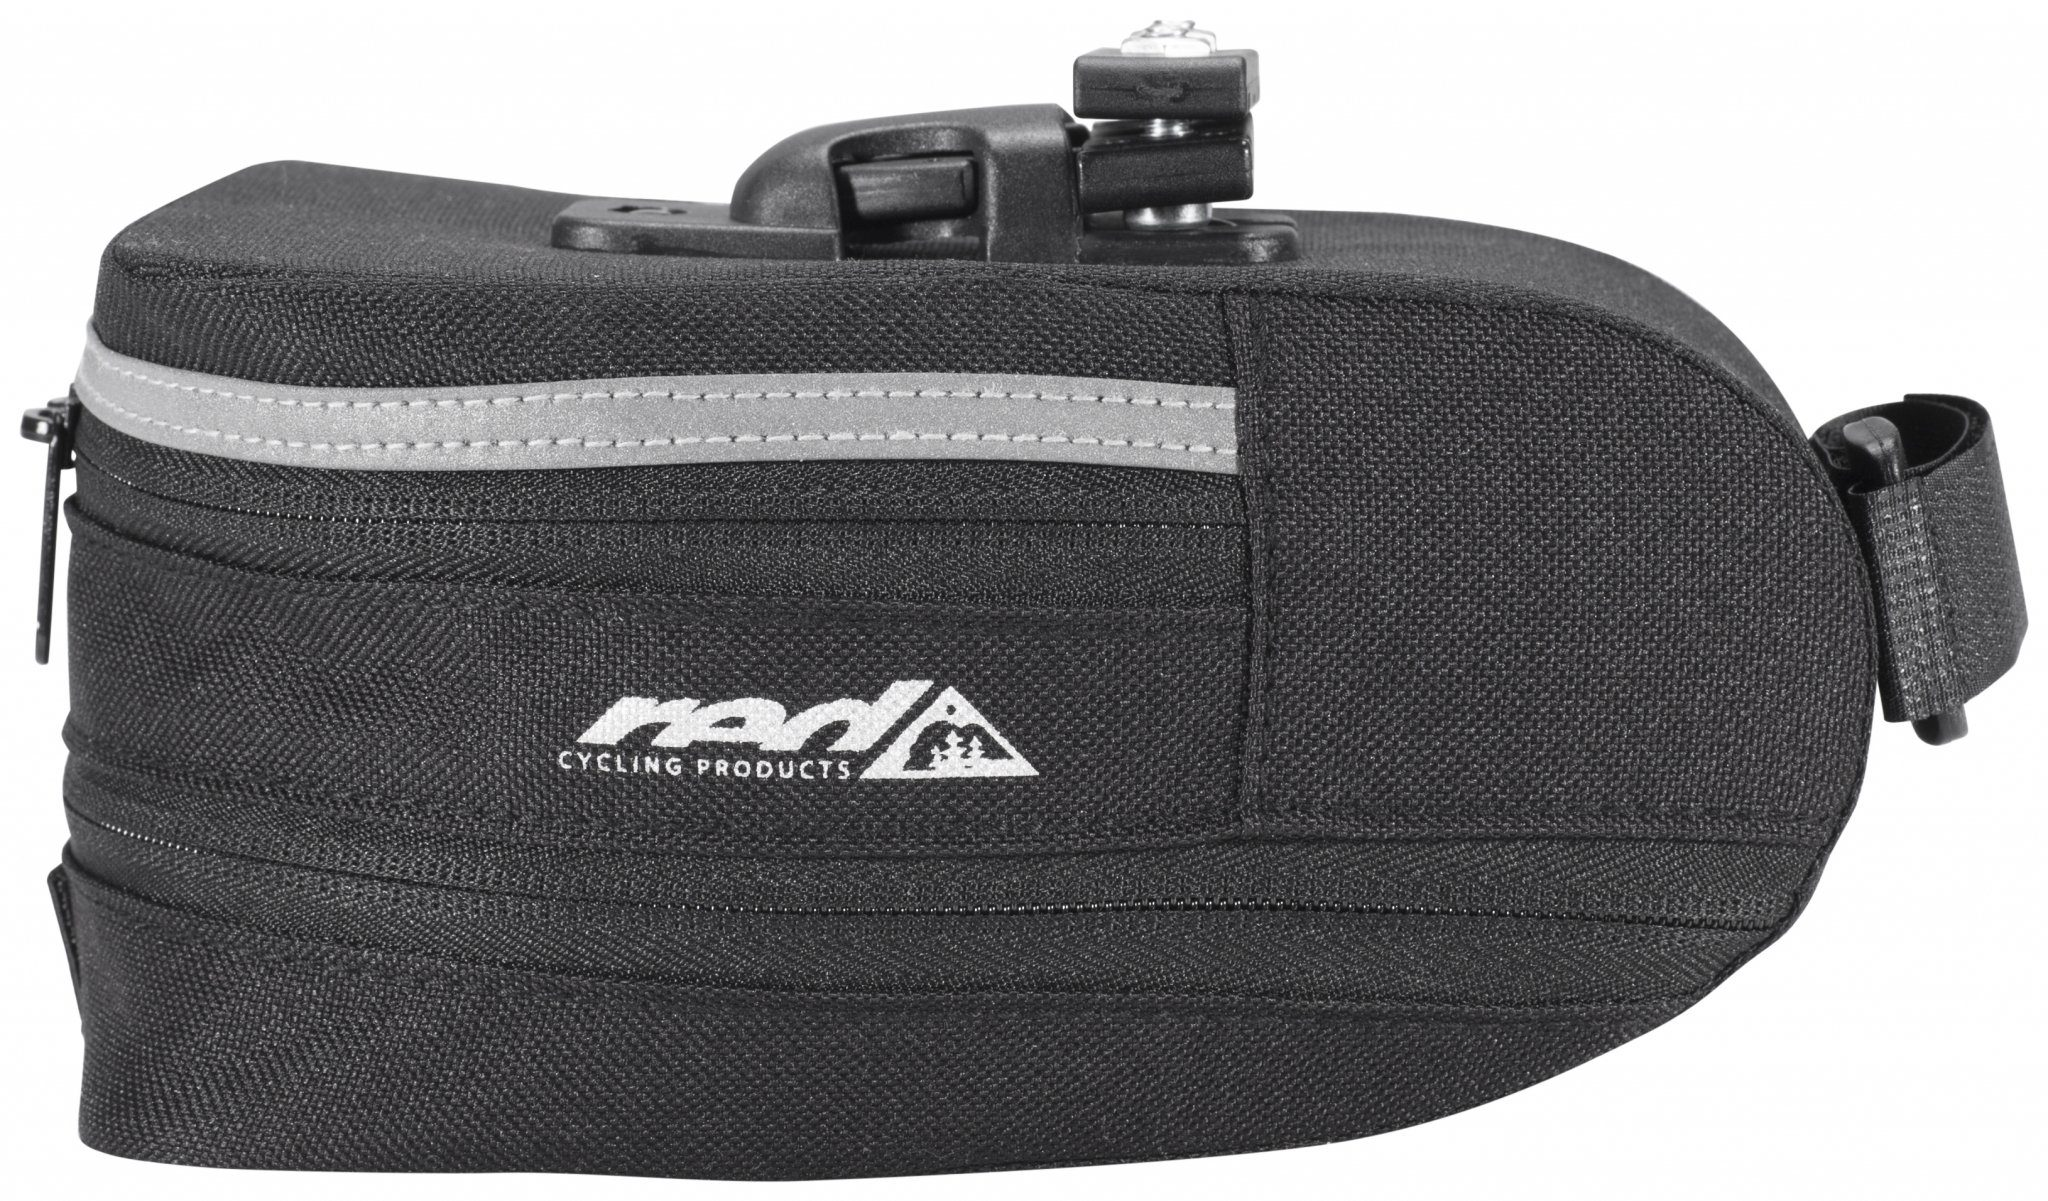 Red Cycling Products Fahrradtasche »Saddle Bag X1«